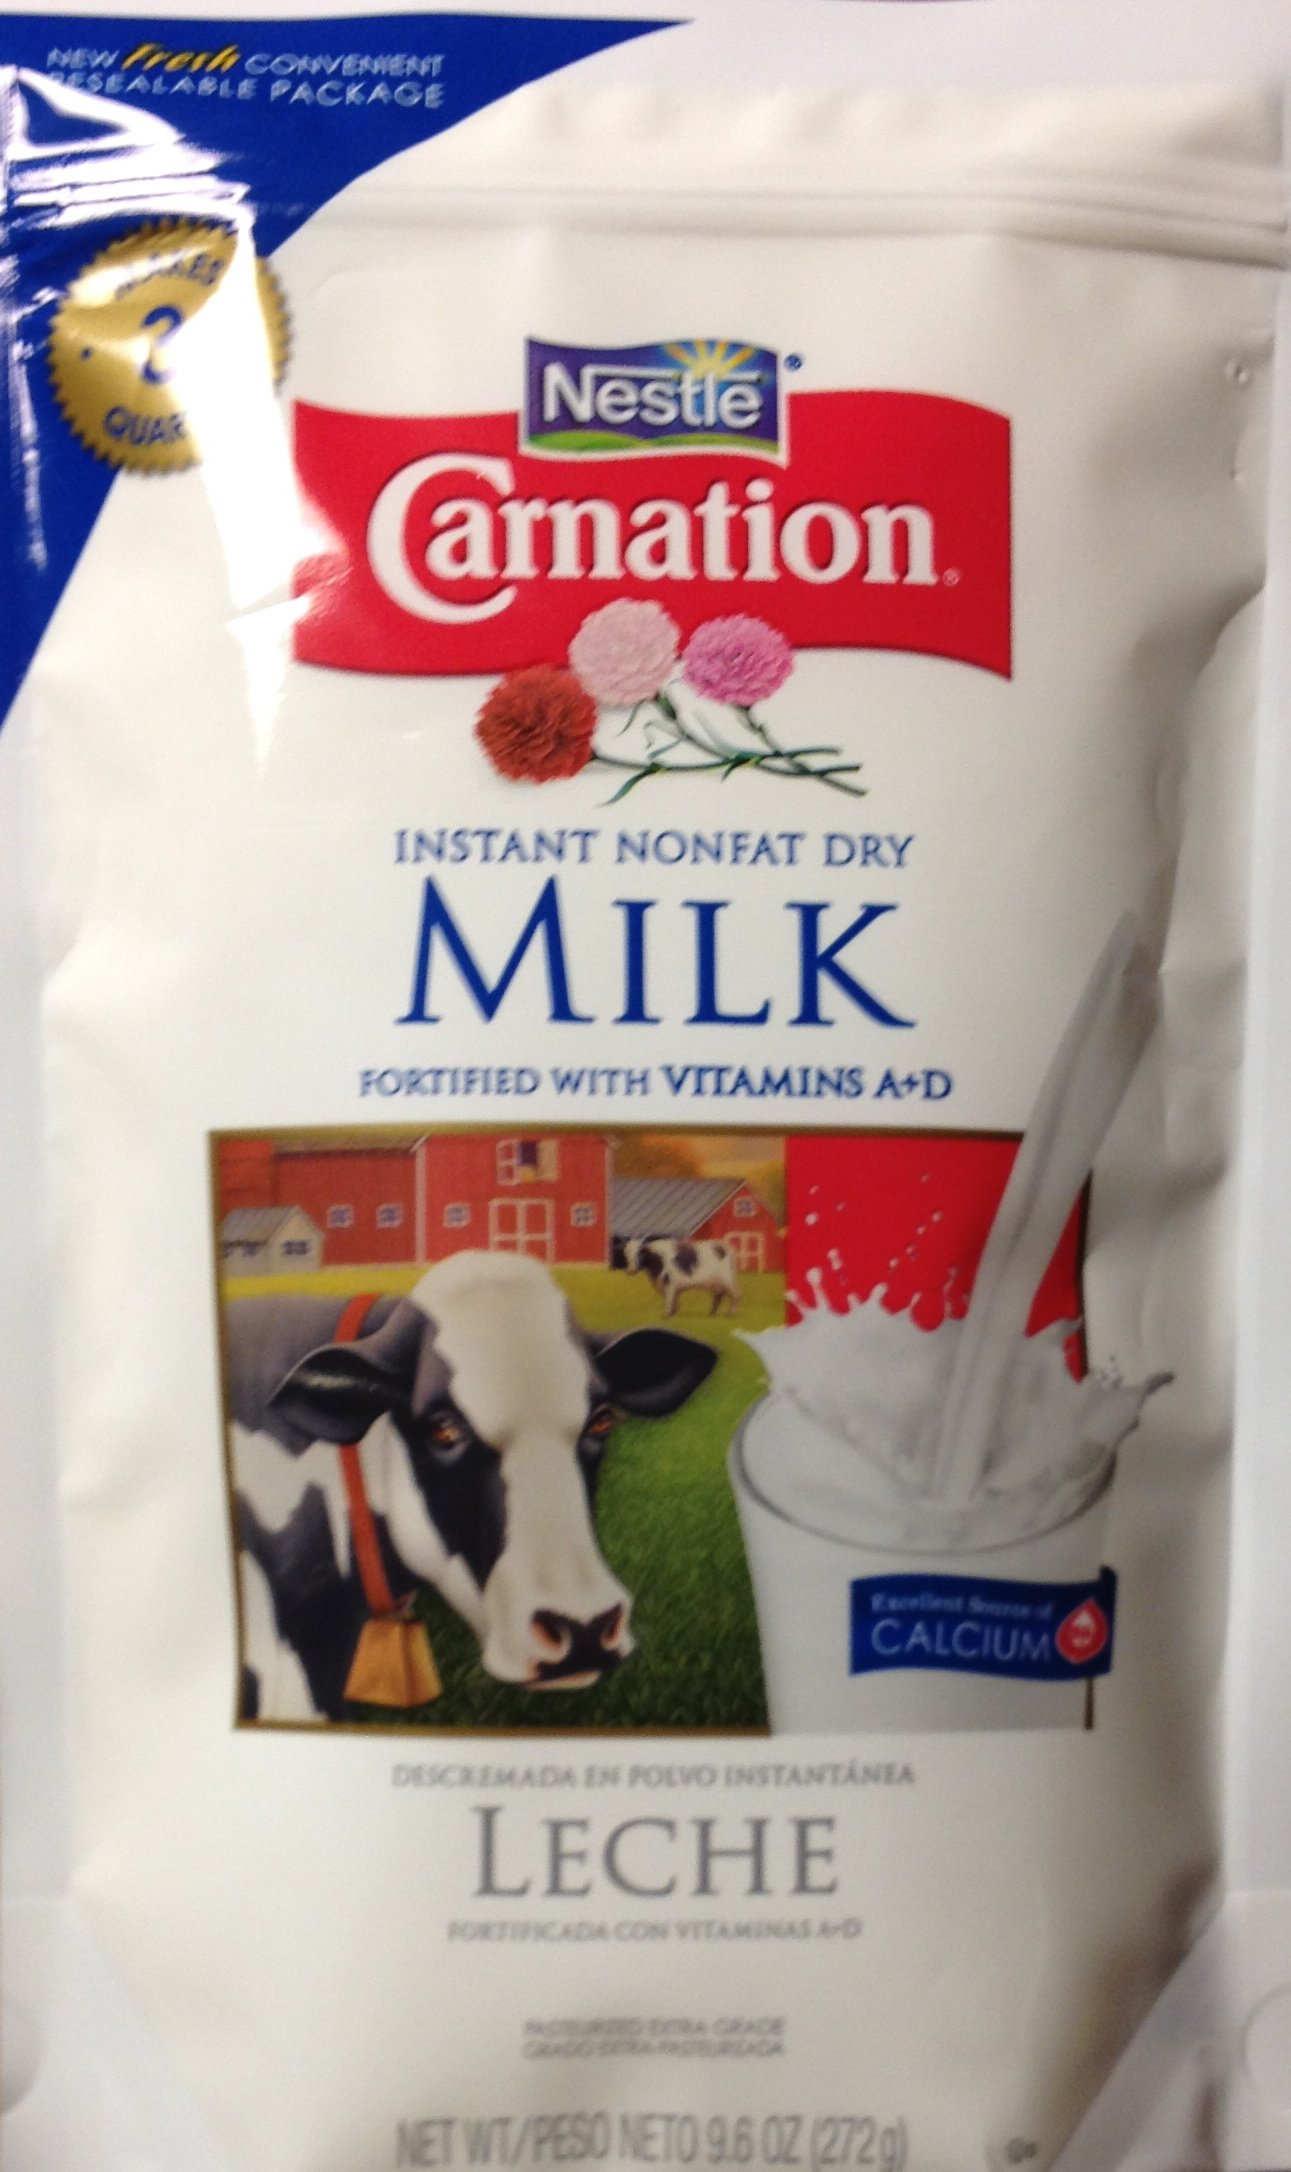 Carnation INSTANT Nonfat DRY MILK 9.6oz Pouch (2-Pack) by Nestle (Image #1)